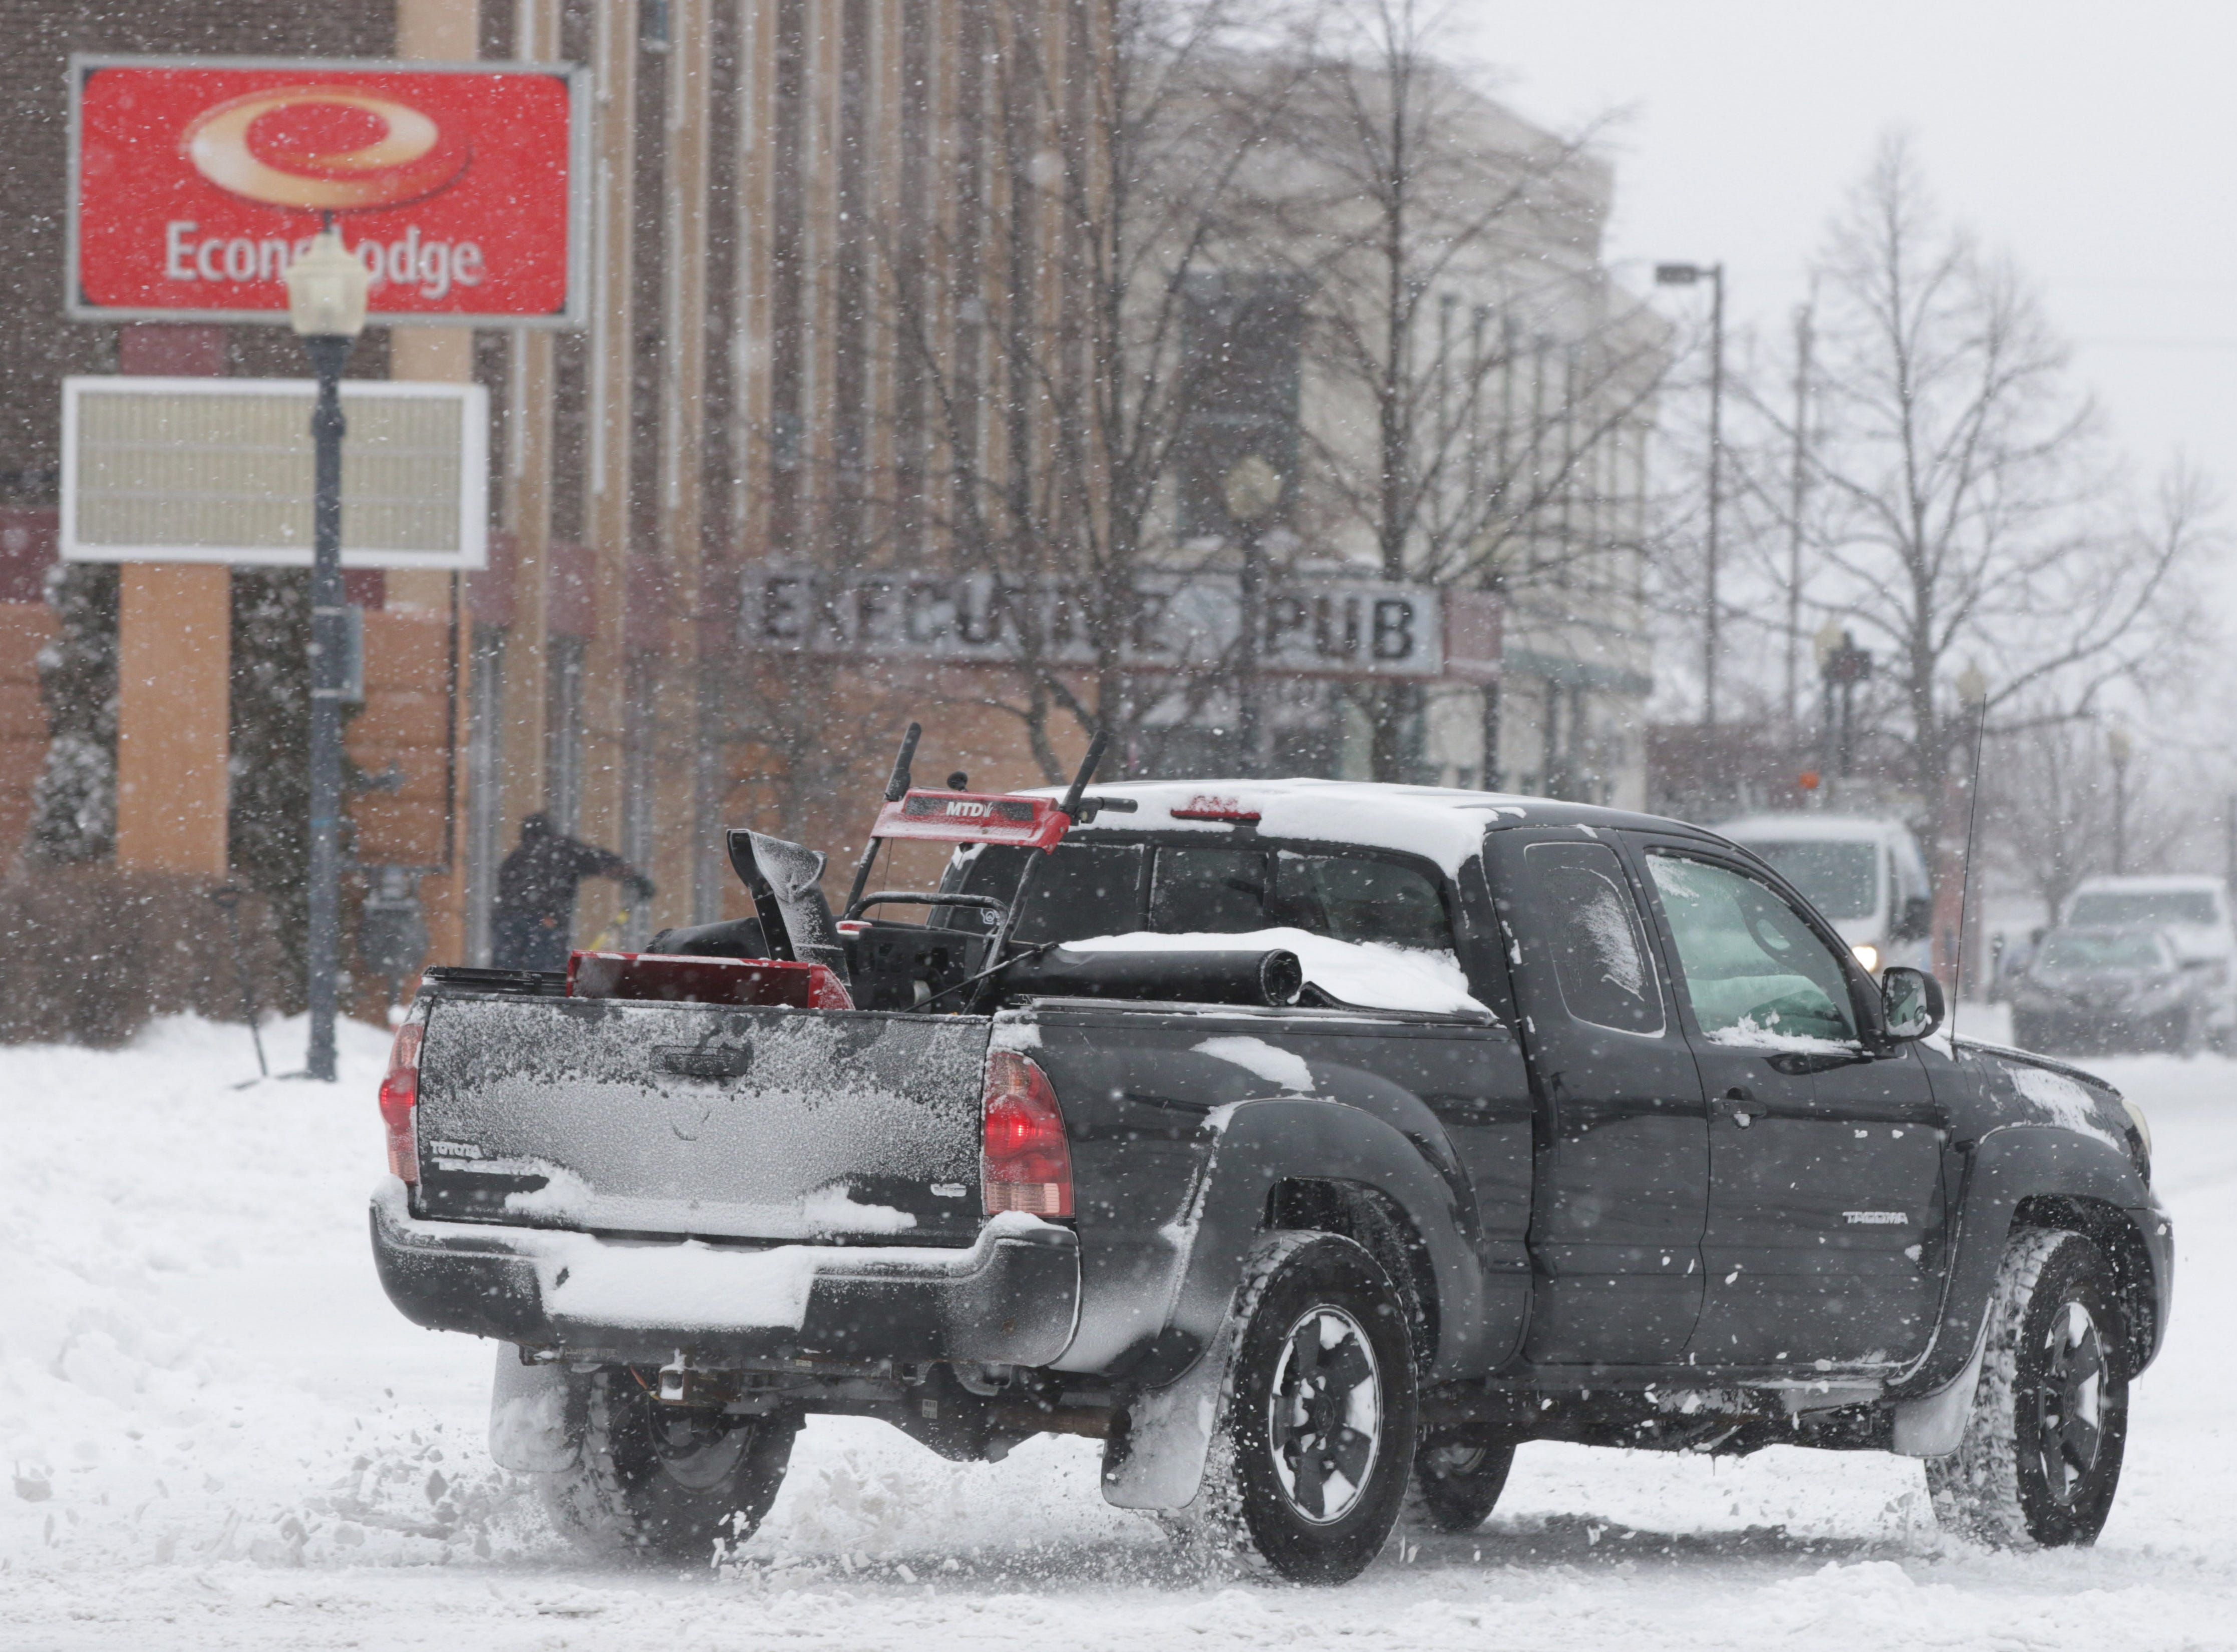 A truck carries a snowblower in its bed, Saturday, January 19, 2019, in Sheboygan, Wis.